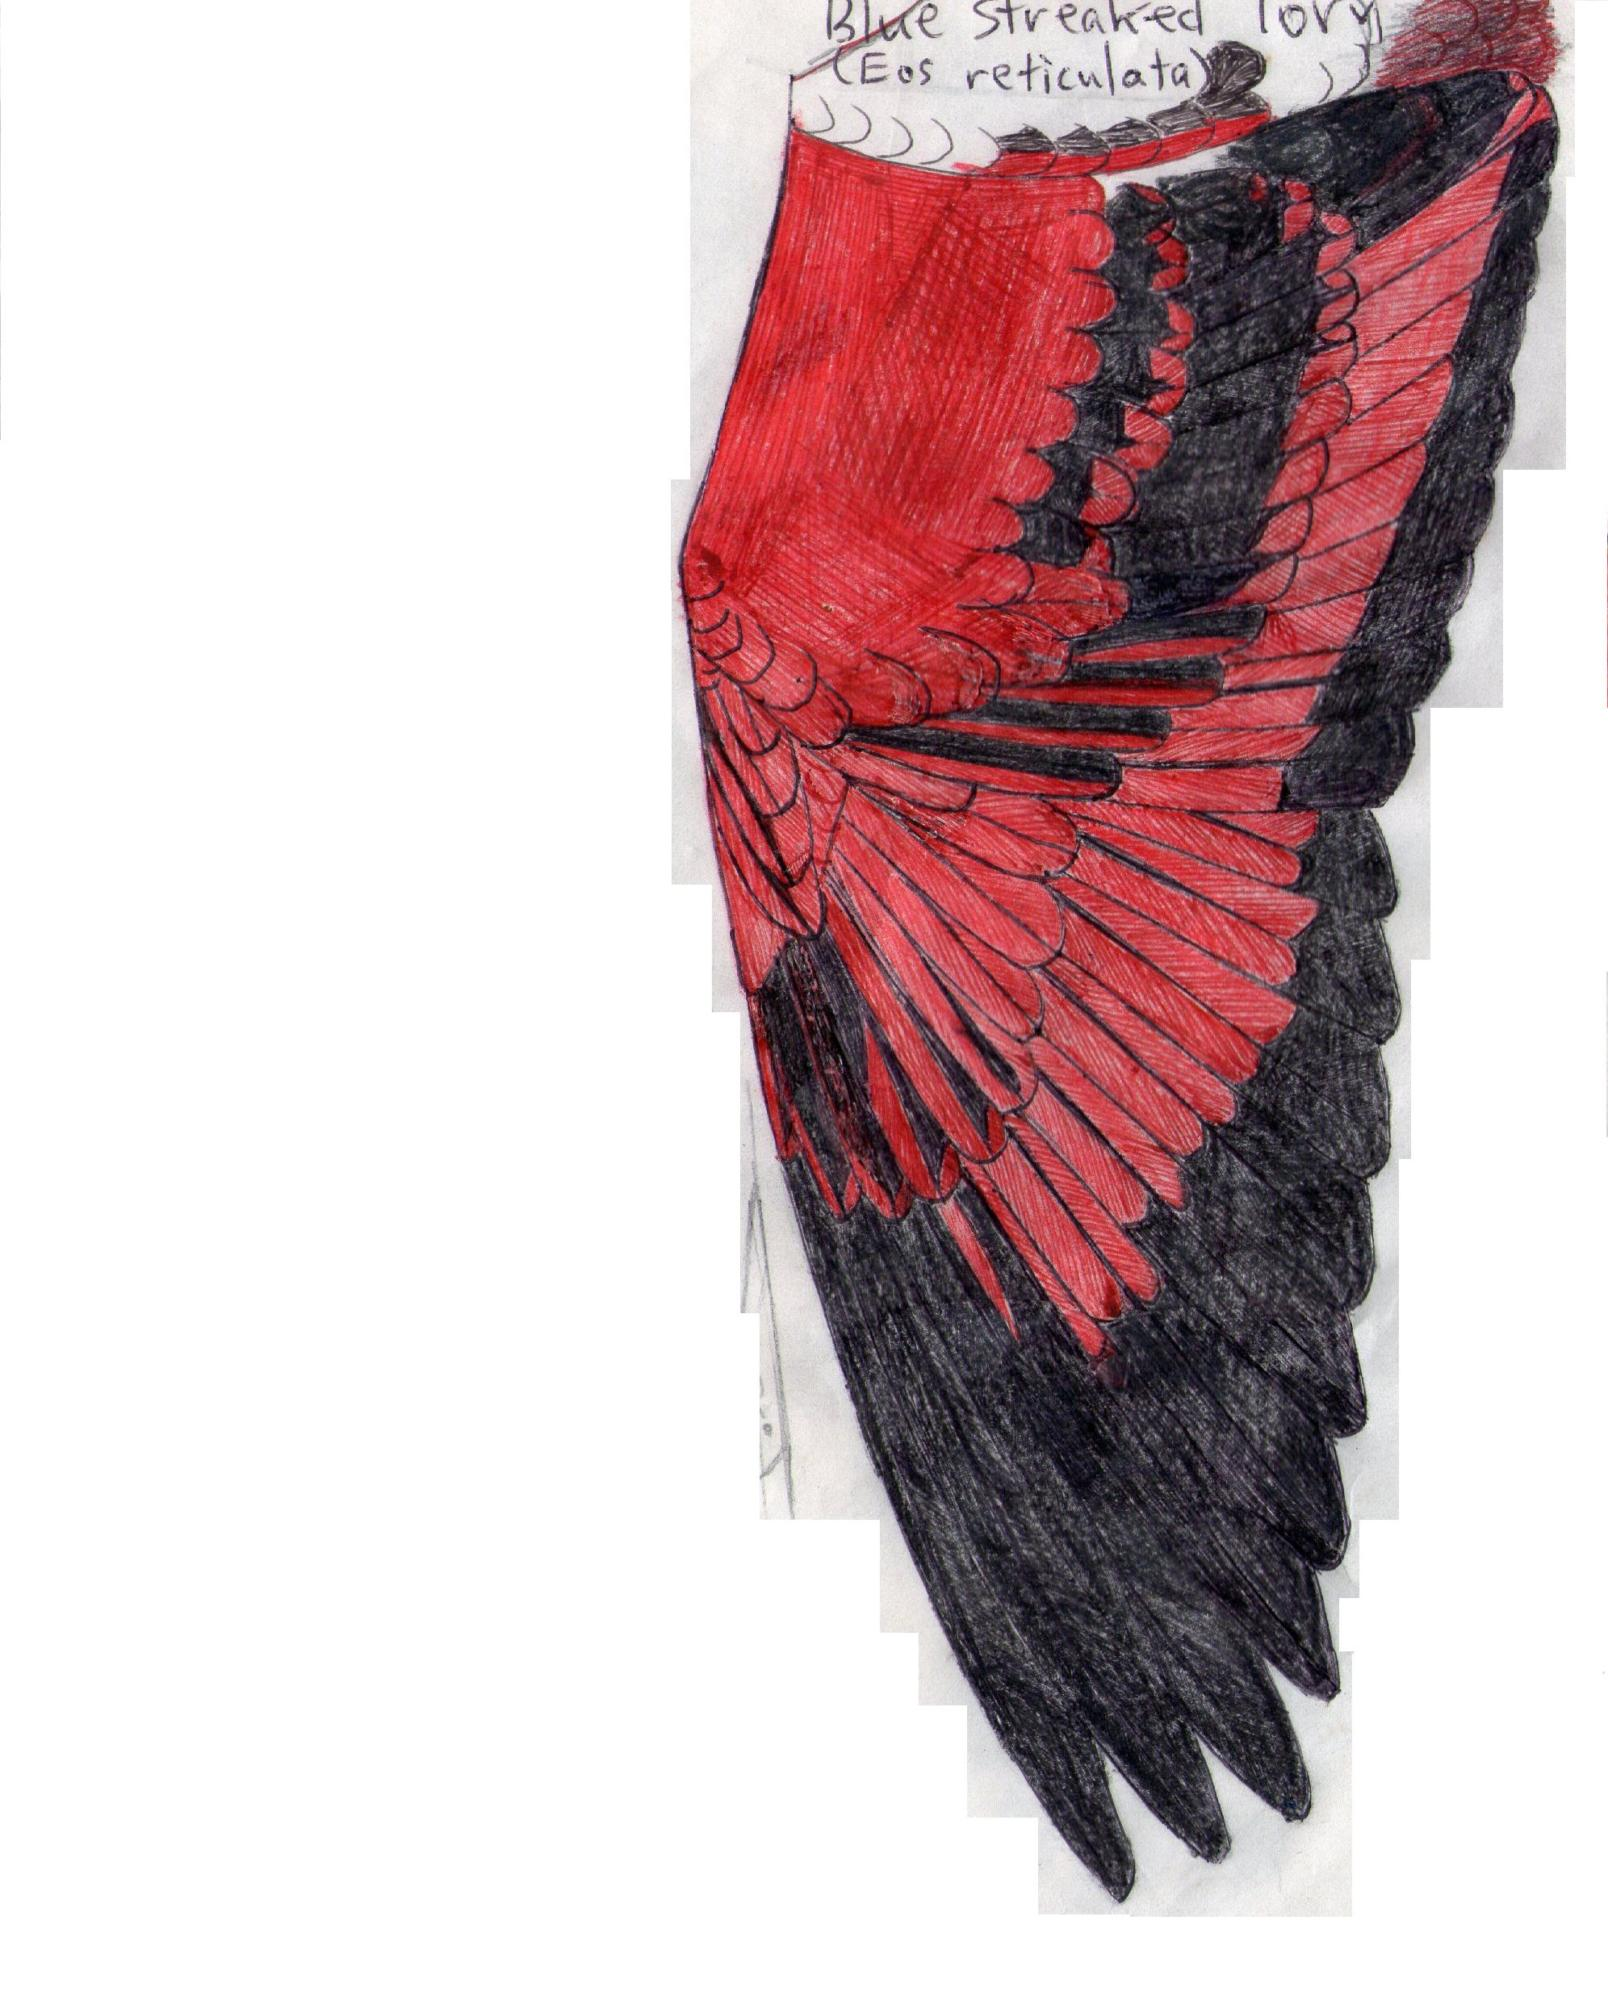 Blue-streaked lory wing.